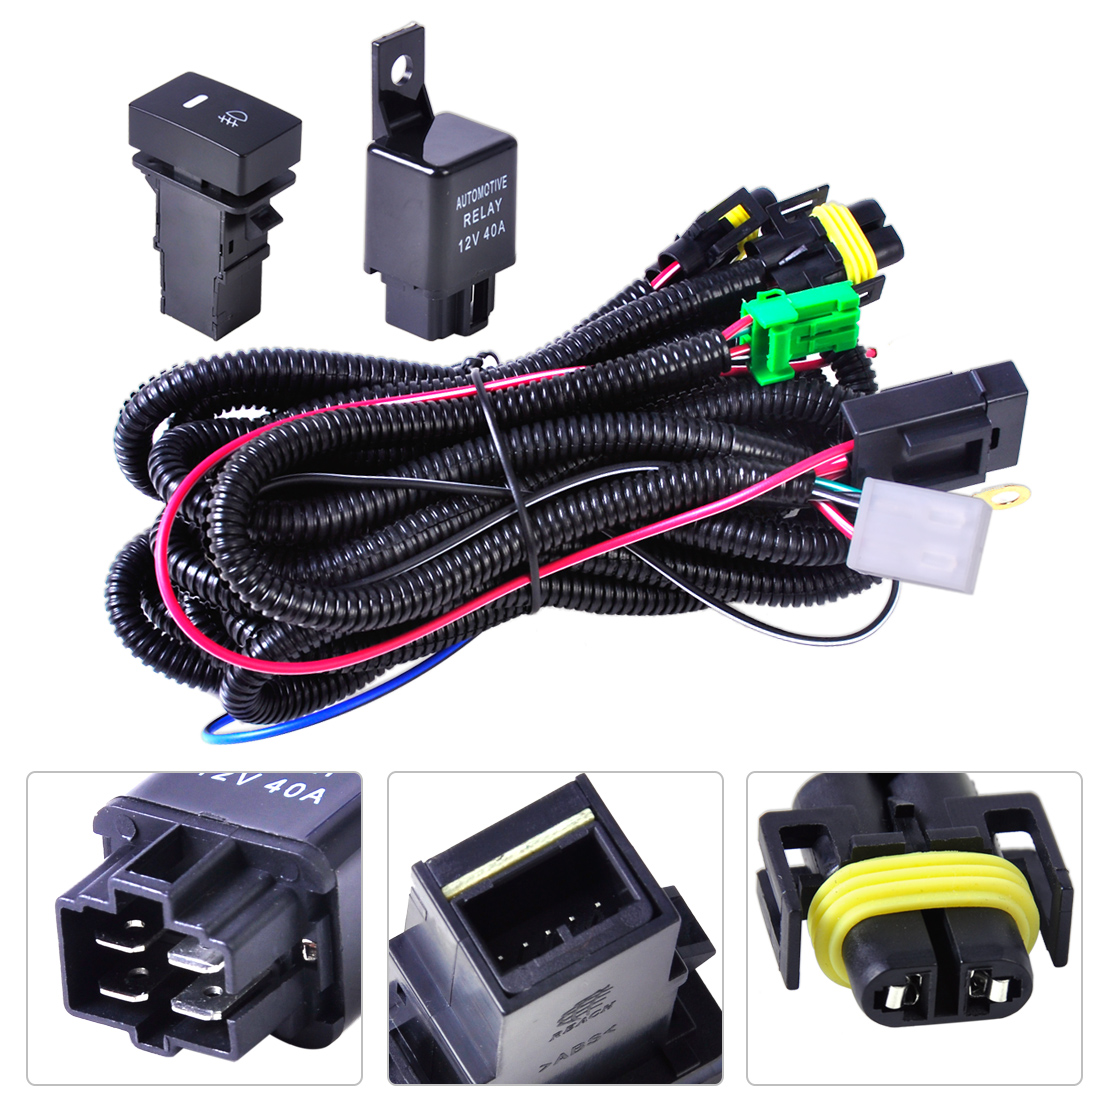 small resolution of dwcx wiring harness sockets wire switch for h11 fog light 2005 silverado radio wiring harness wiring